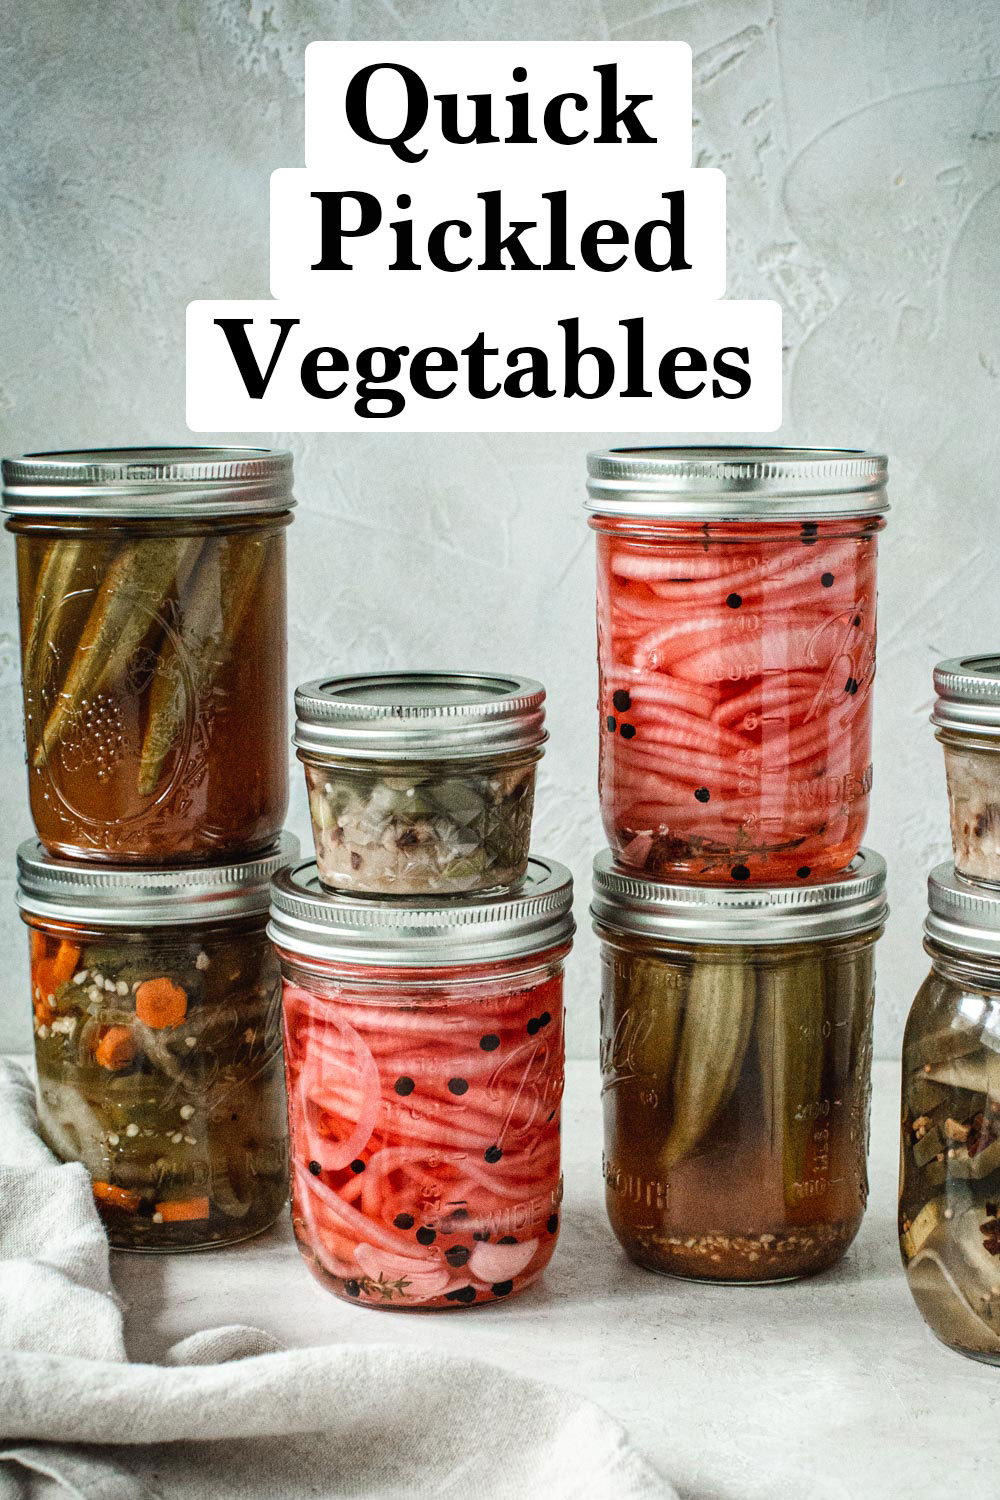 Quick pickled vegetables in jars stacked on each other.